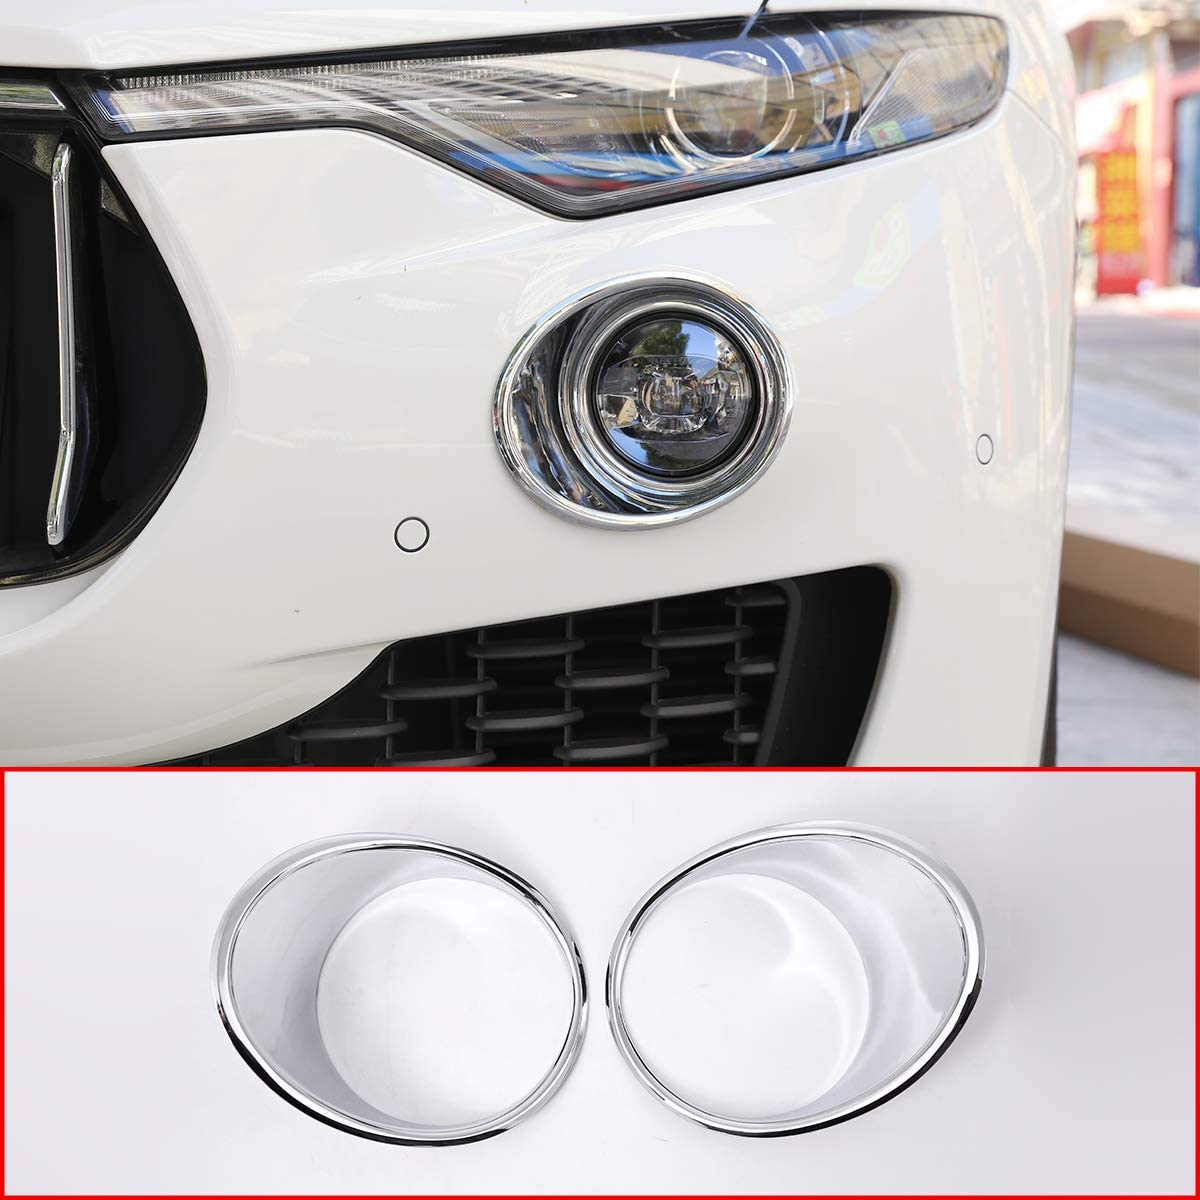 For Maserati Levante 2016 Car Styling Front Fog Light Lamp Decoration Cover Trim Sticker Accessories